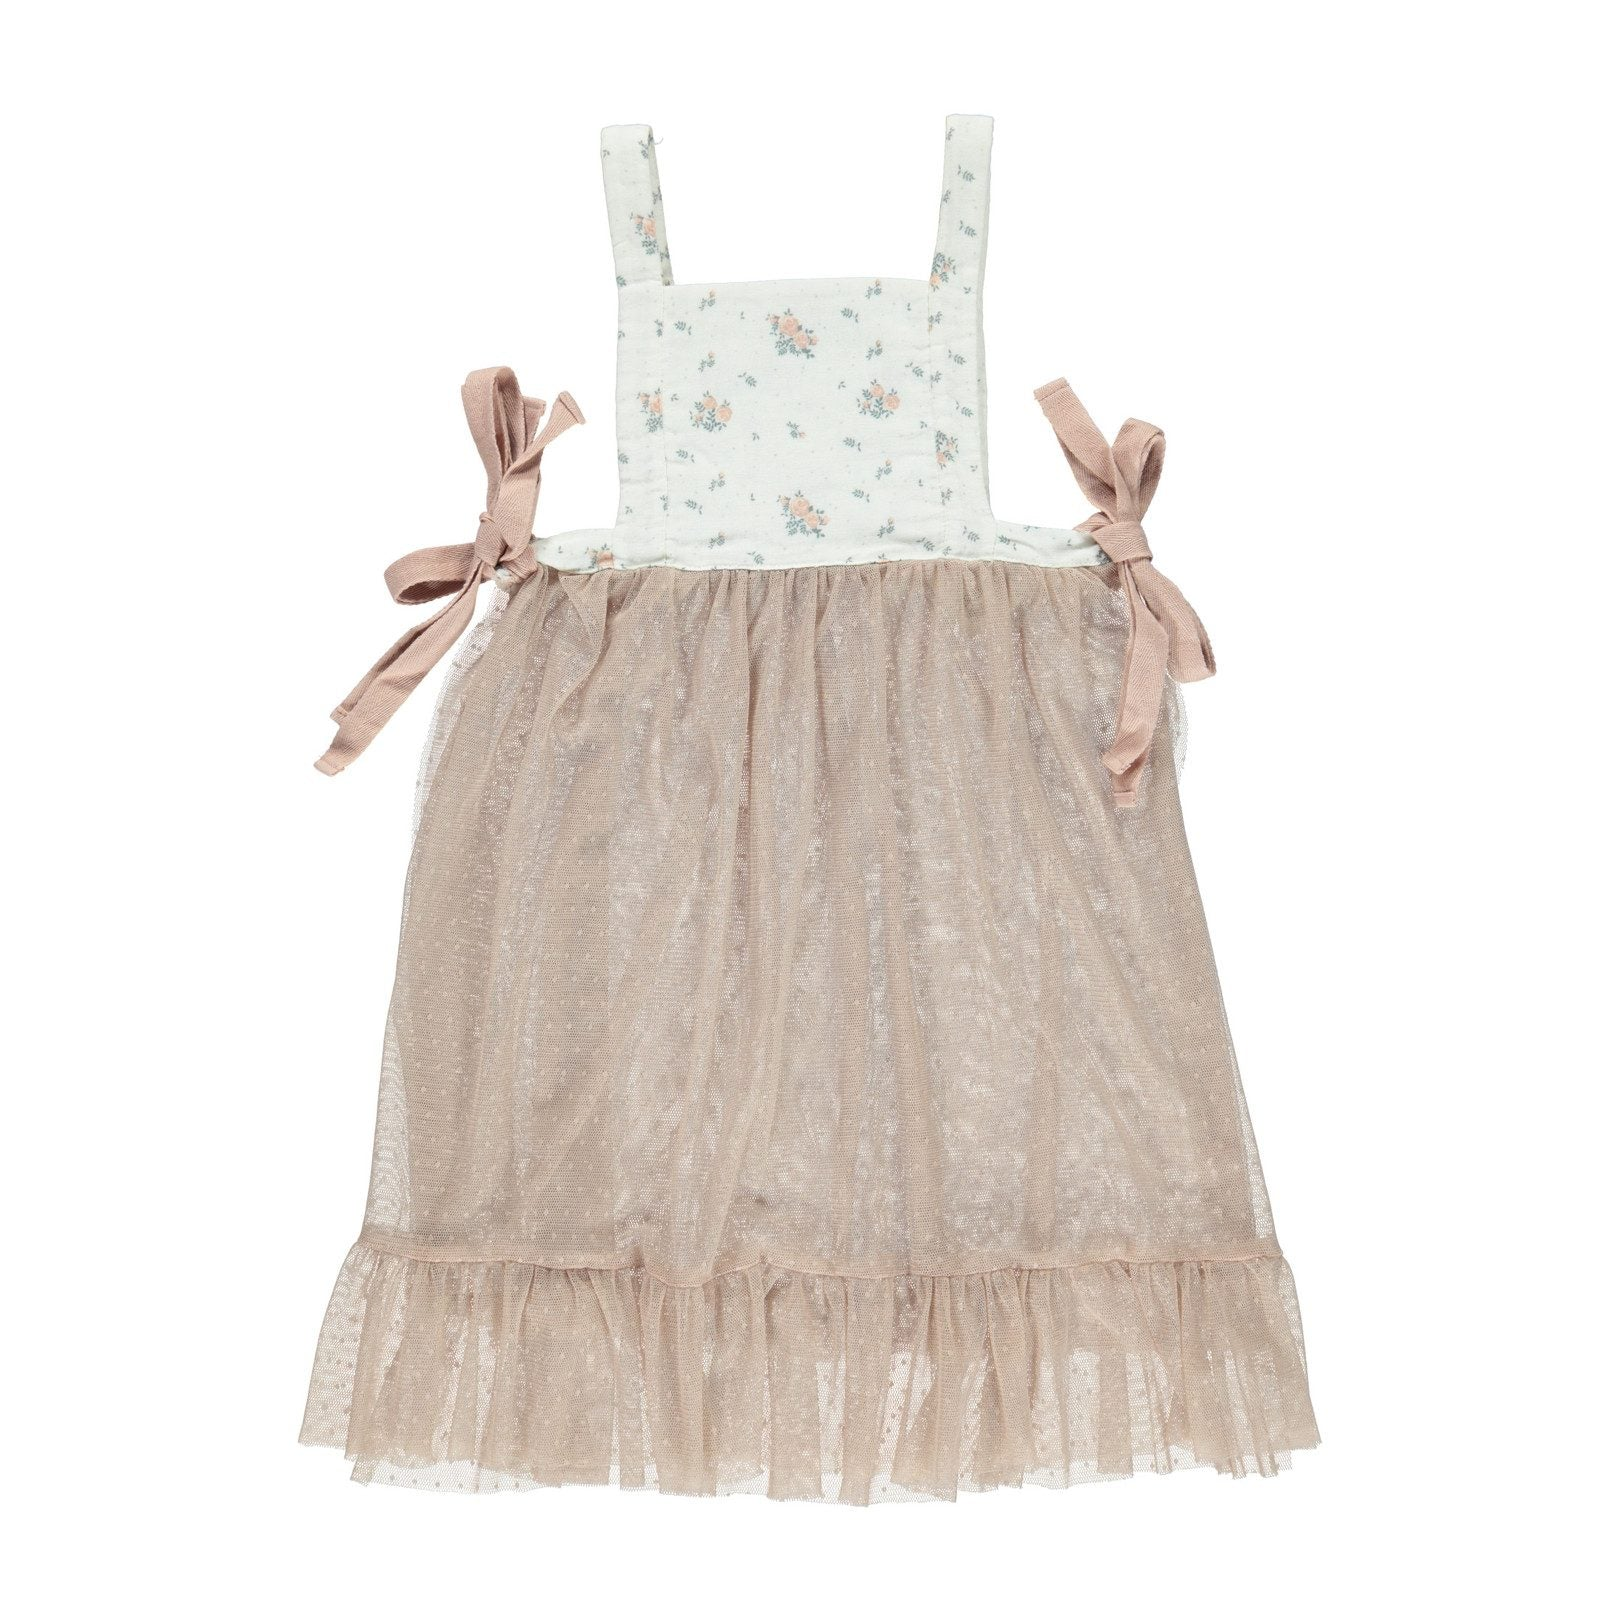 ORGANIC MELANIE APRON, WINTER BLOSSOM |BEBE ORGANIC - Spinel Boutique